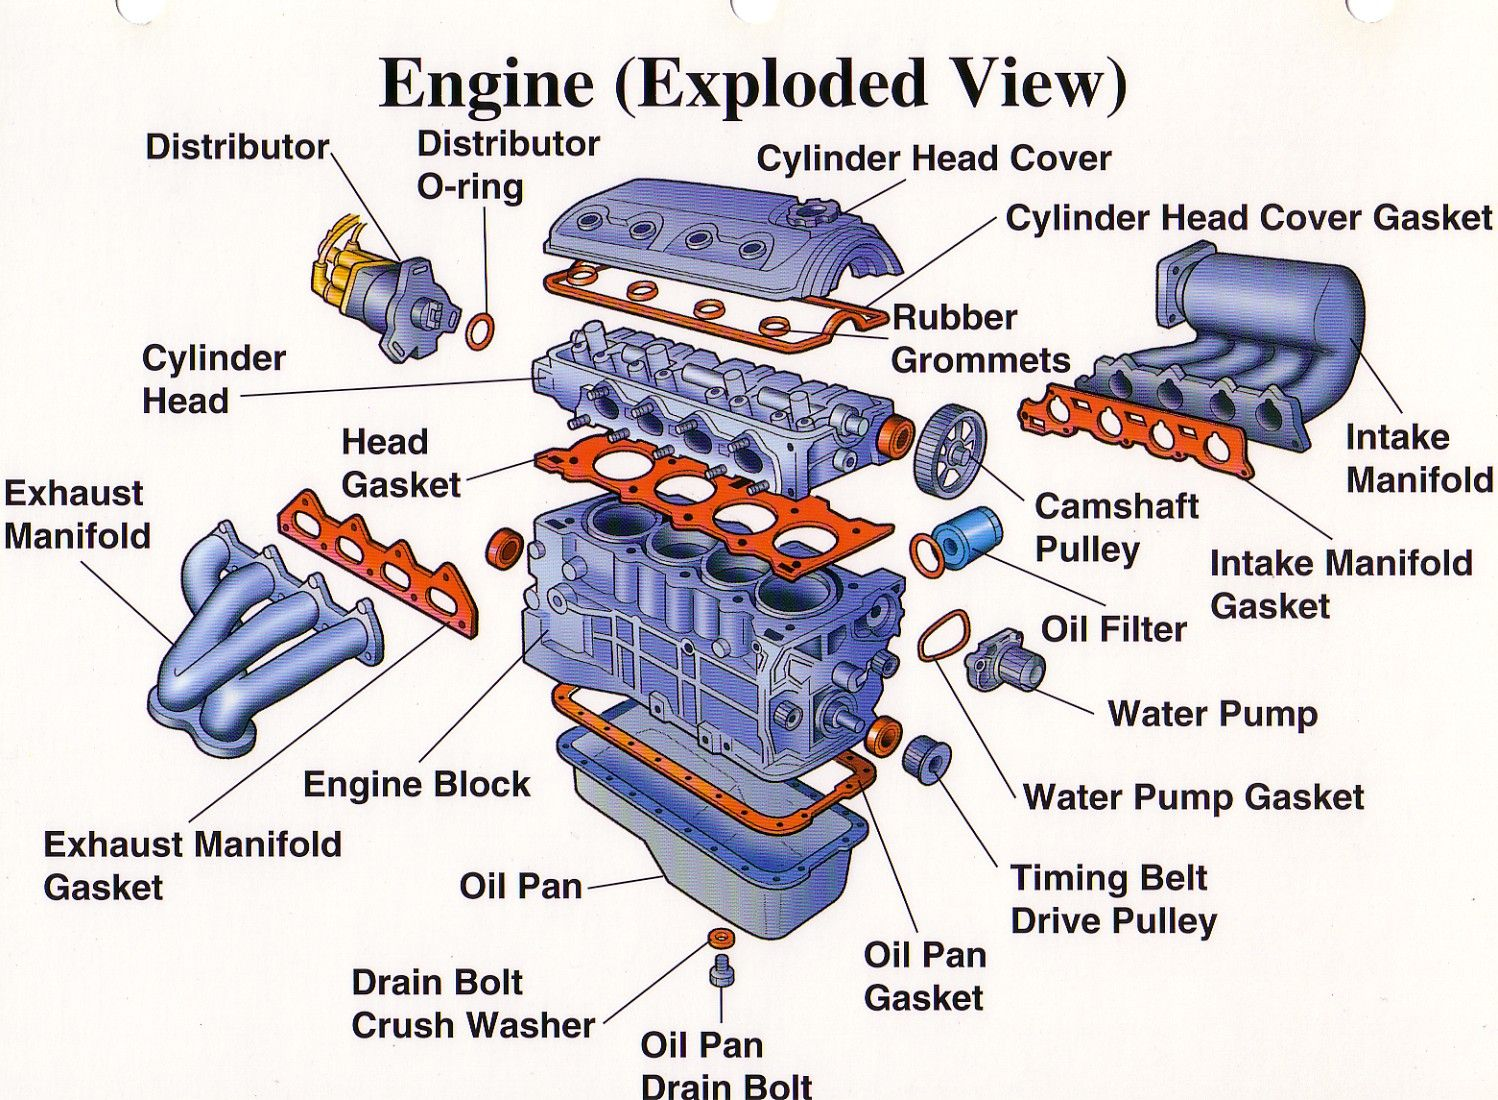 hight resolution of basic car engine parts diagram engine diagrams for cars car engine basic hot rod wiring http wwwhotrodcom techarticles hrdp1108abs